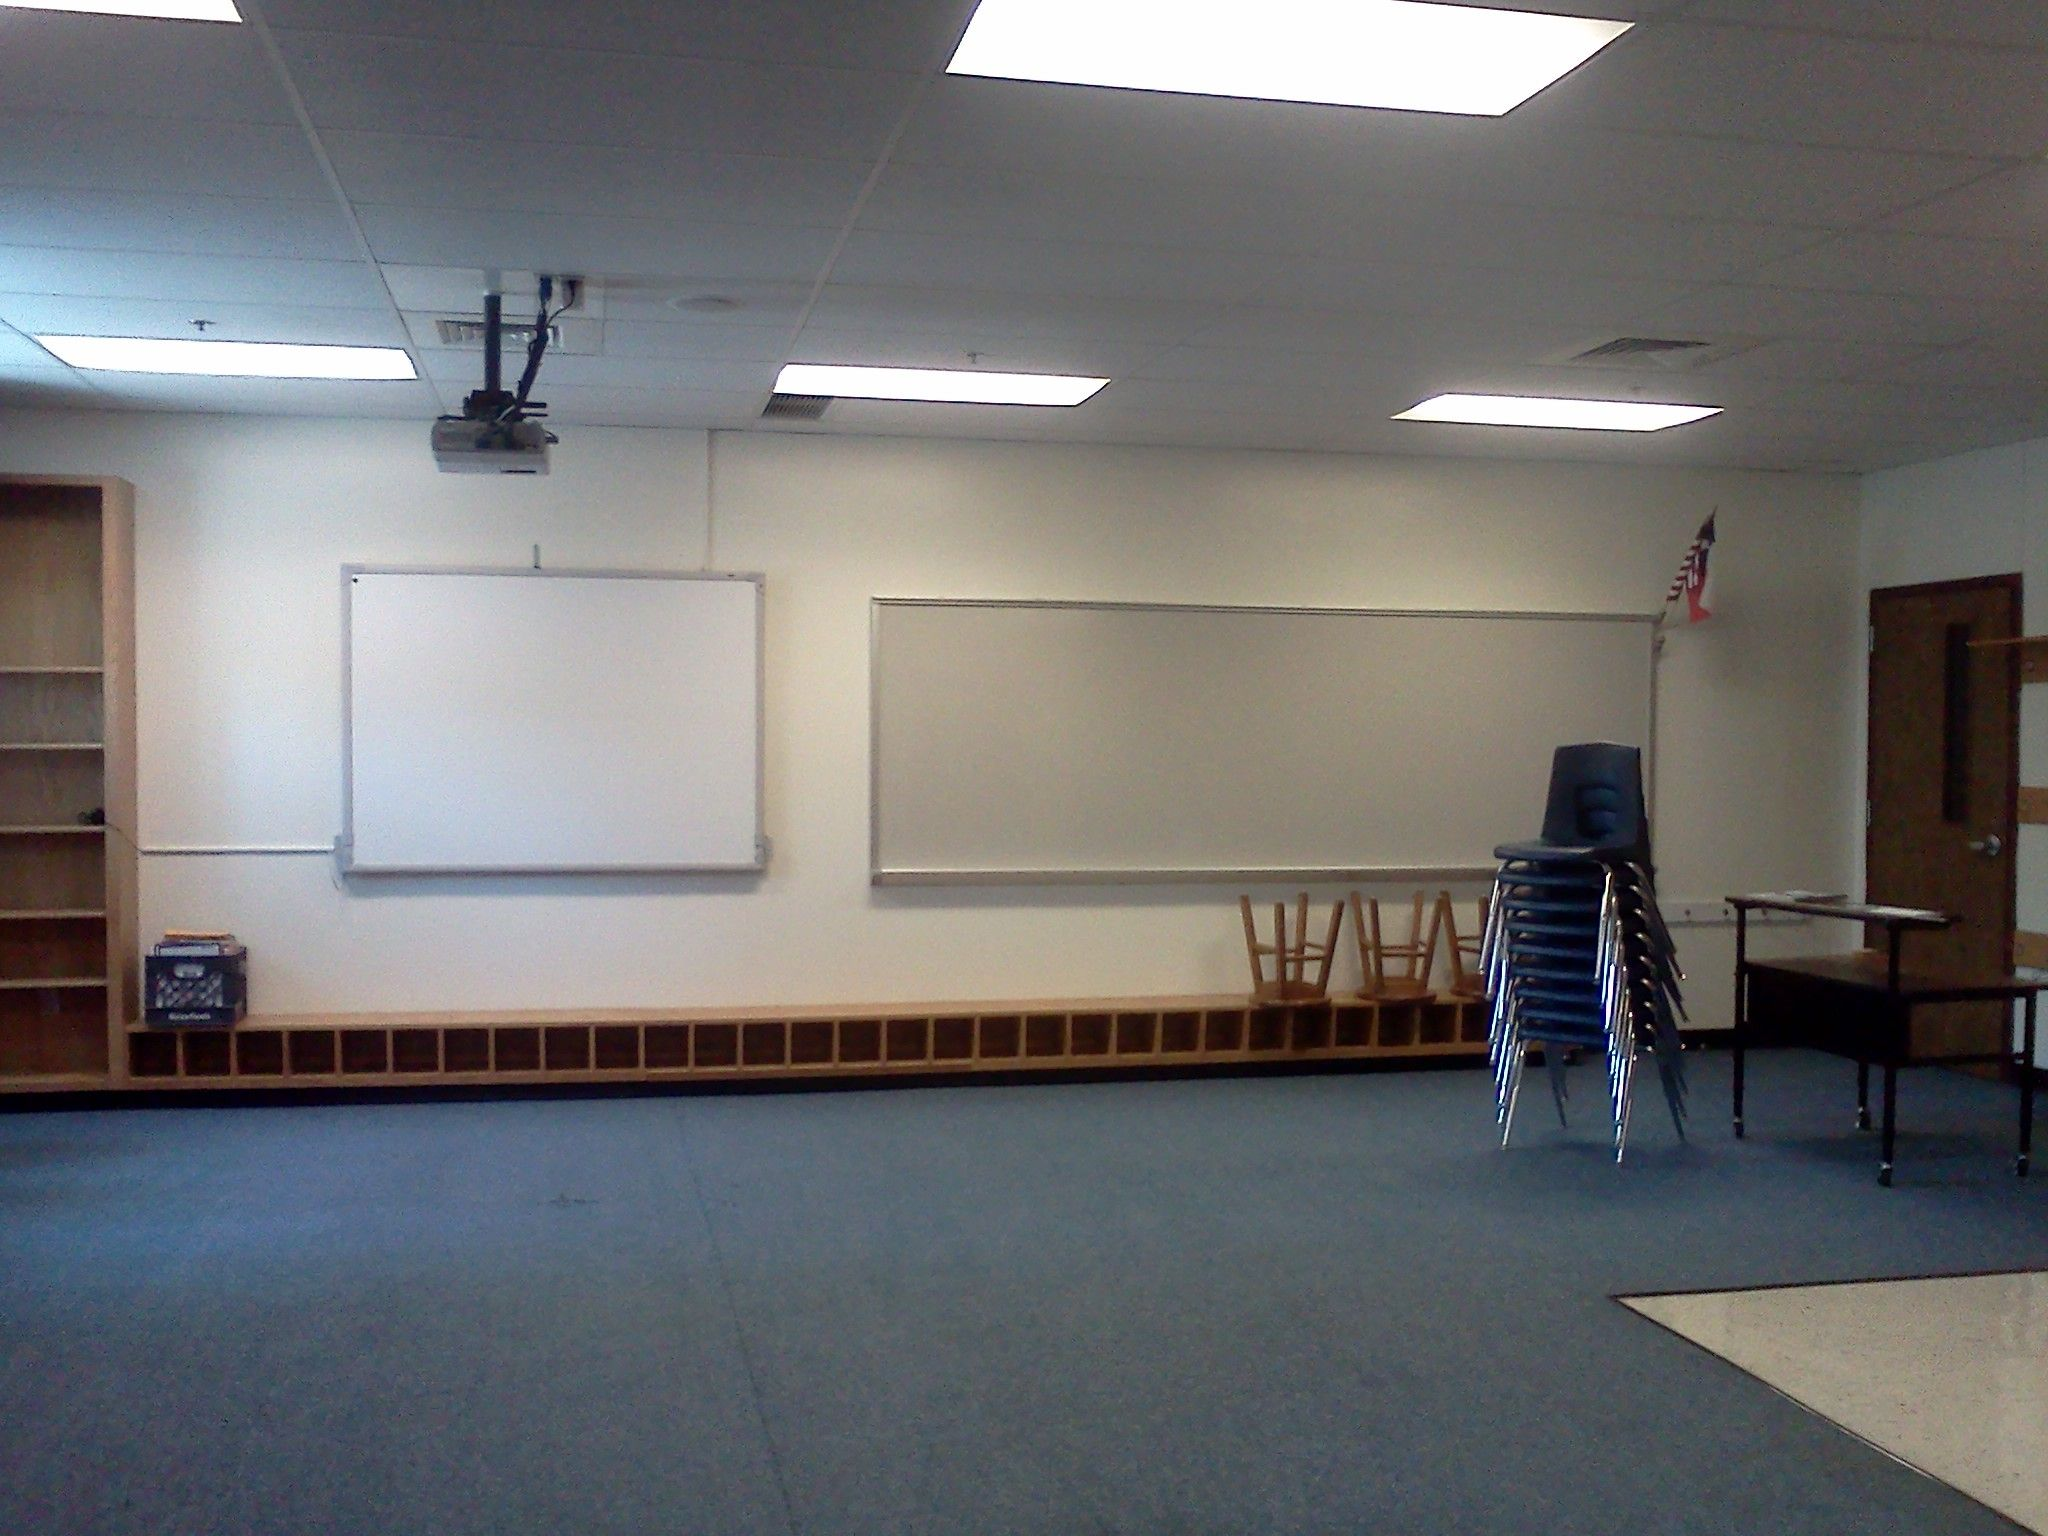 front view of classroom | 5th grade classroom | Pinterest